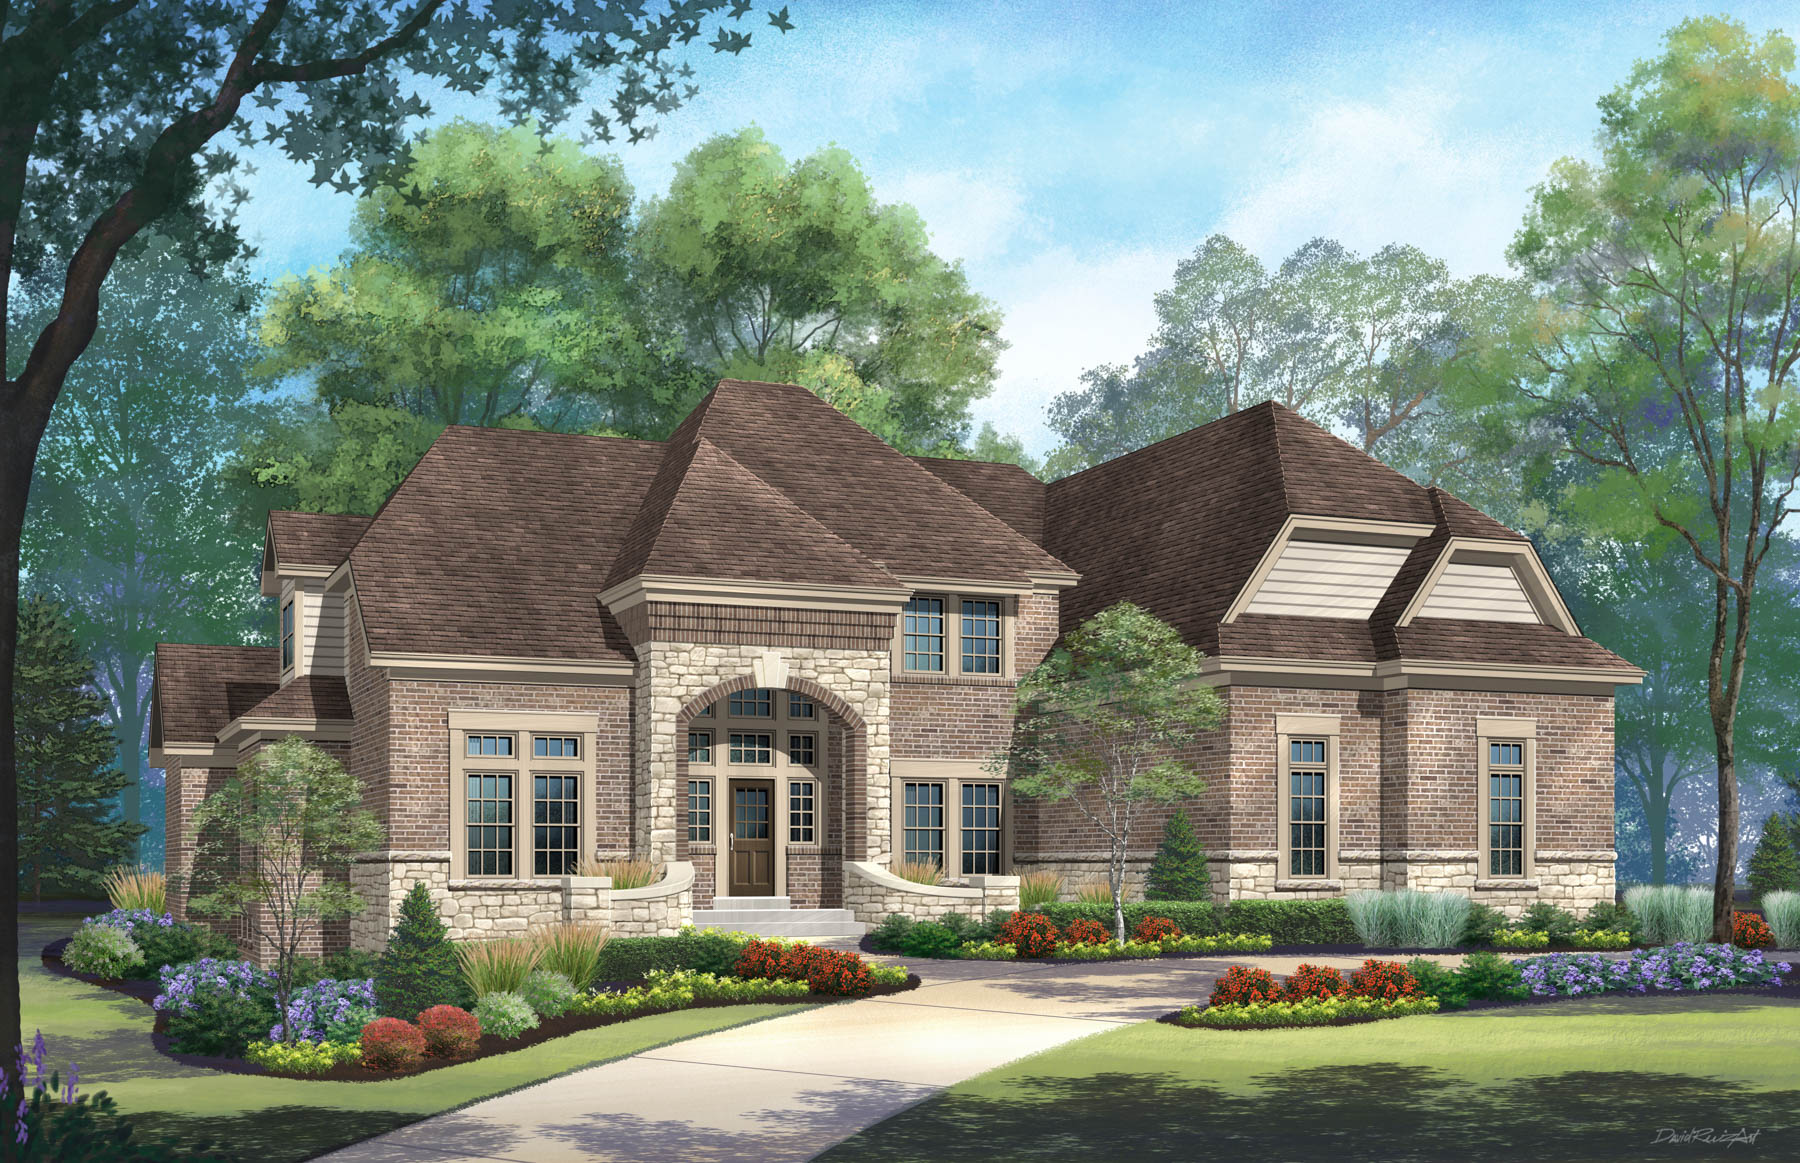 Casa Unifamiliar por un Venta en Sackston Woods 13 Sackston Woods Lane Creve Coeur, Missouri, 63141 Estados Unidos